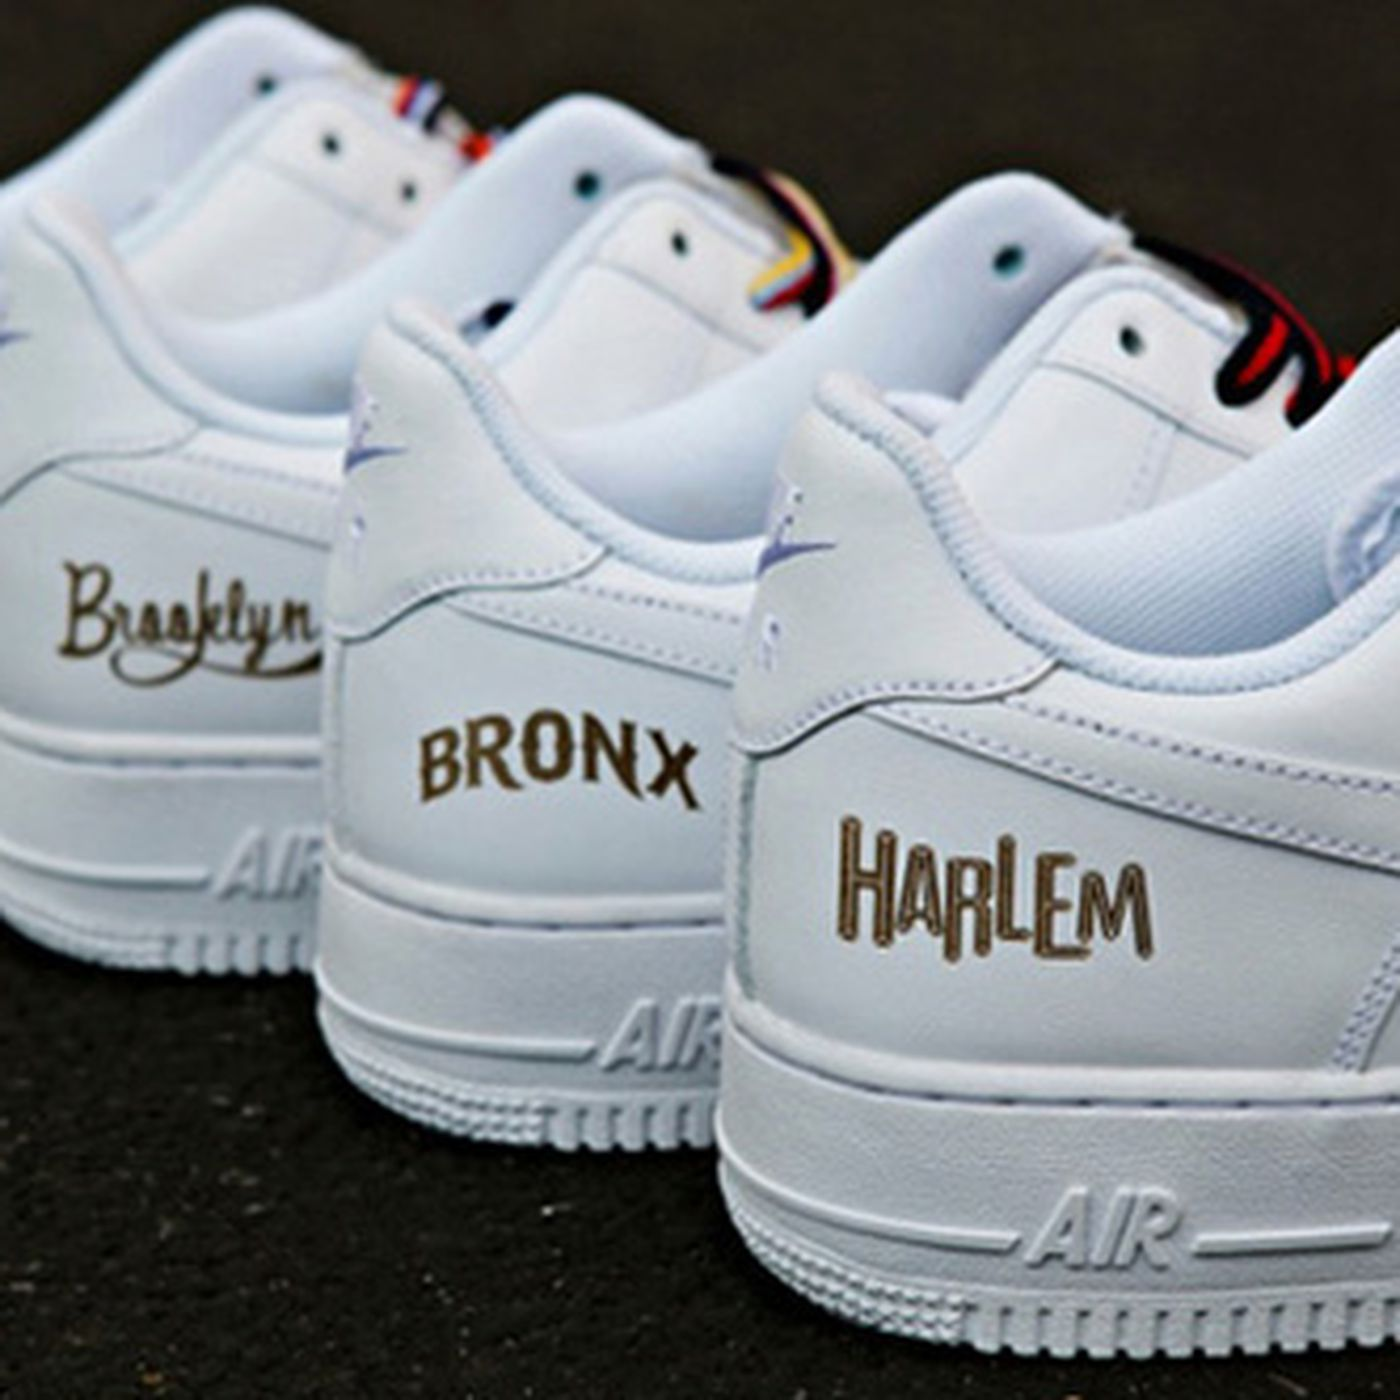 buscar genuino zapatos para baratas 60% barato Nike's Borough-Themed Sneakers Include Harlem, Snub Staten Island - Racked  NY